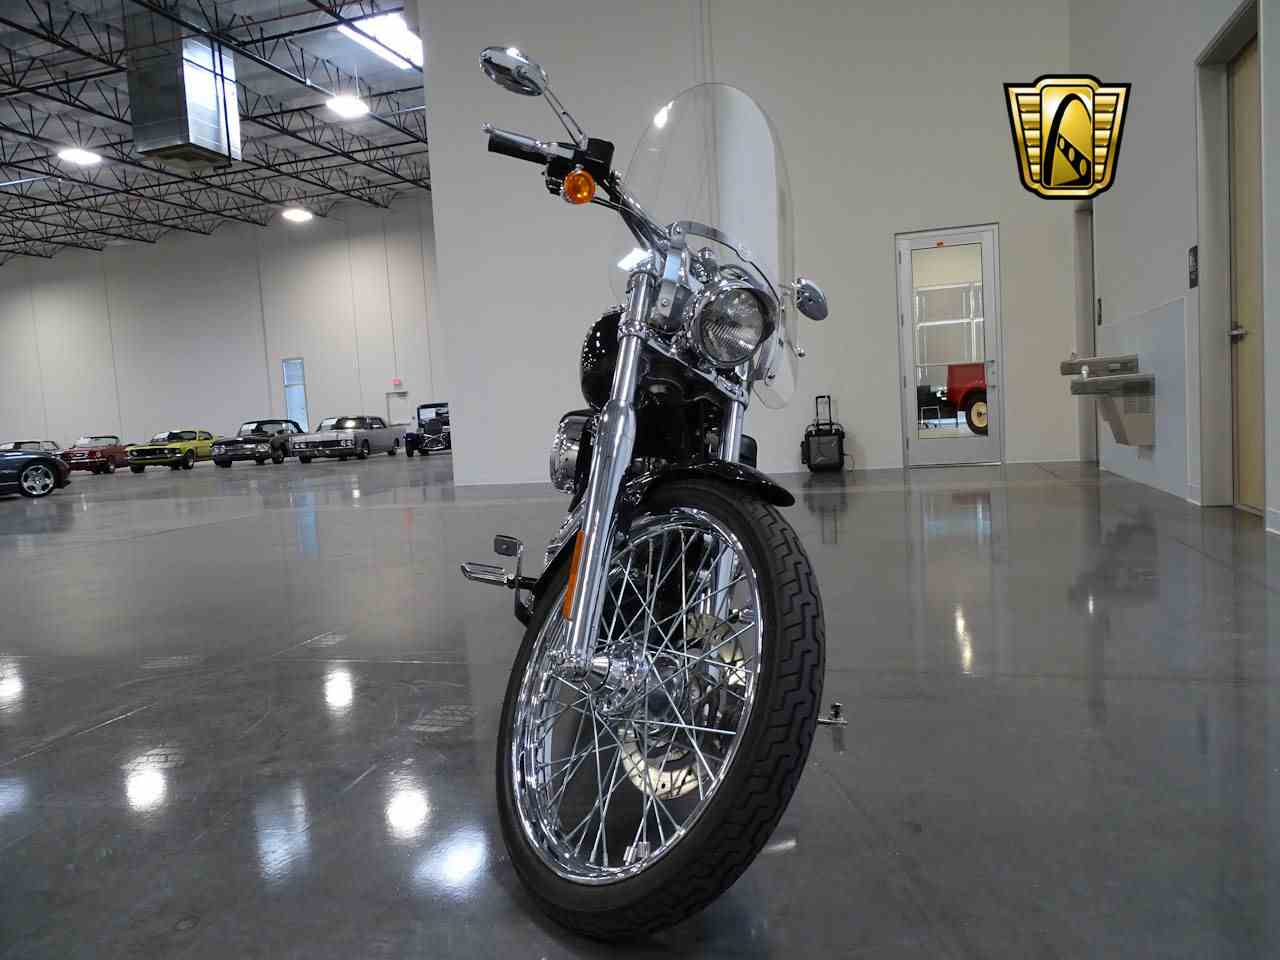 Large Picture of 2001 Harley-Davidson FXSTDI located in Deer Valley Arizona - $8,595.00 Offered by Gateway Classic Cars - Scottsdale - M79F